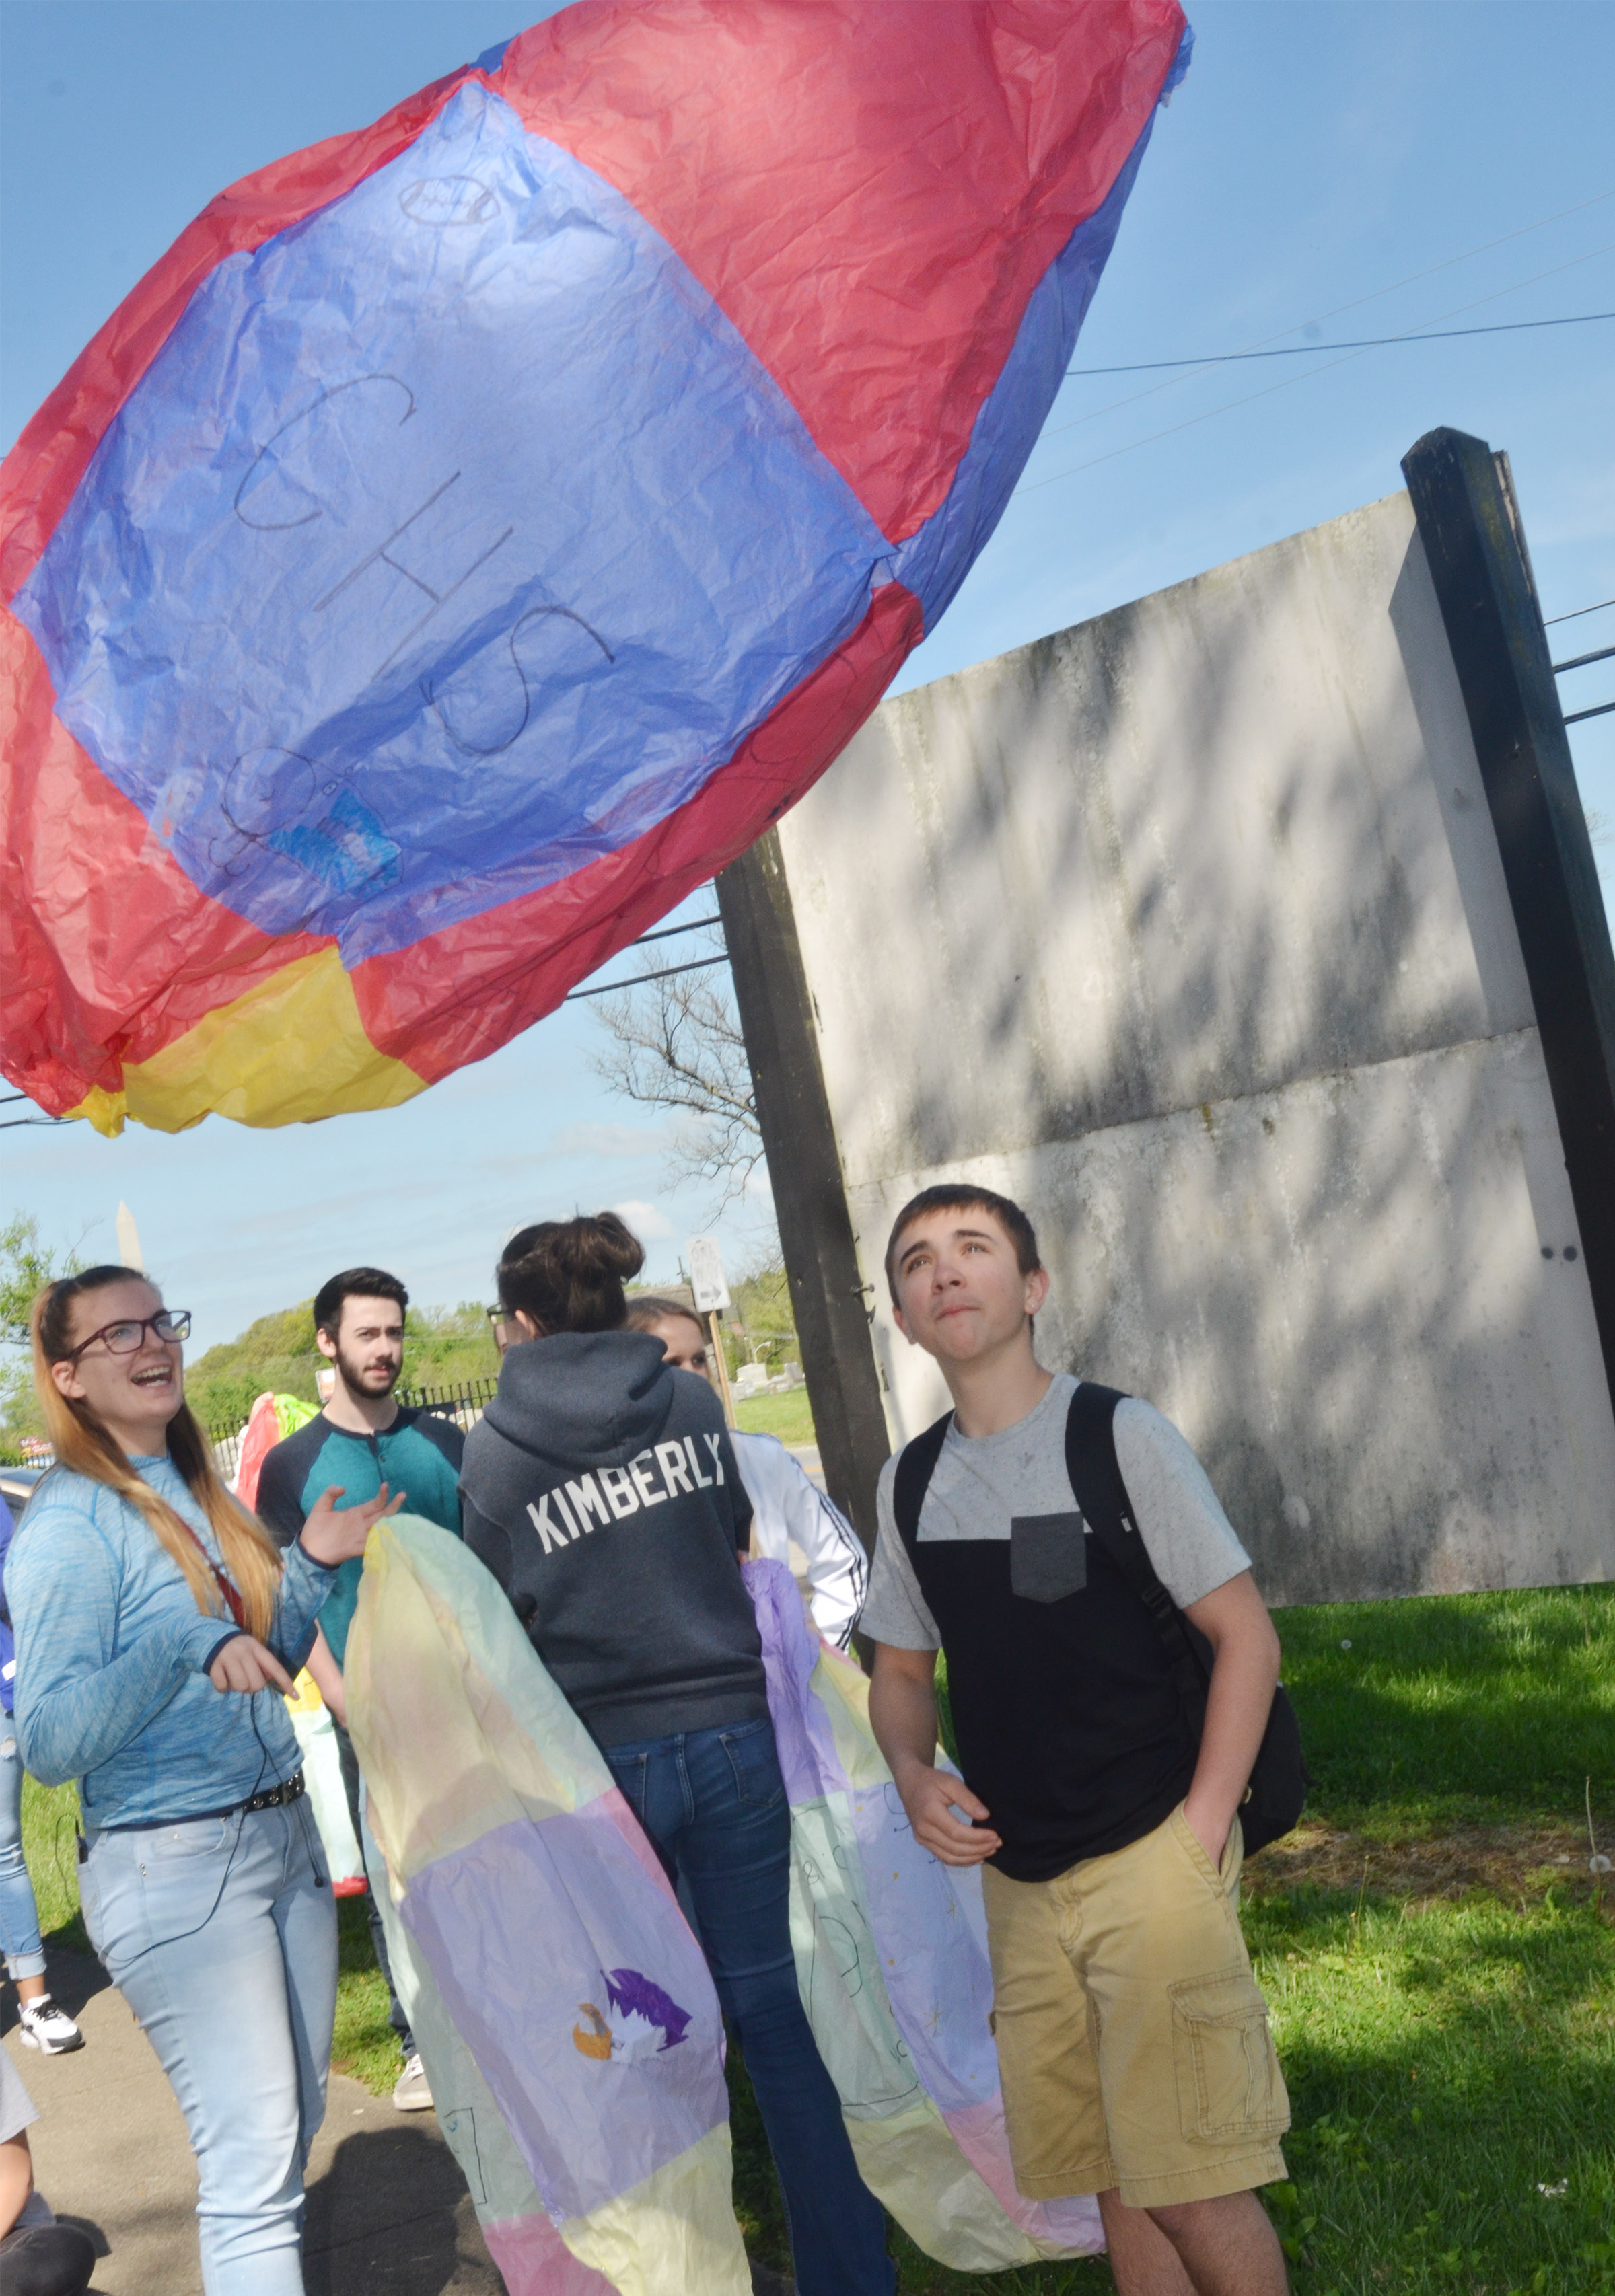 CHS juniors Tiffany Kane, at left, and Austin Carter watch as Carter's balloon flies.